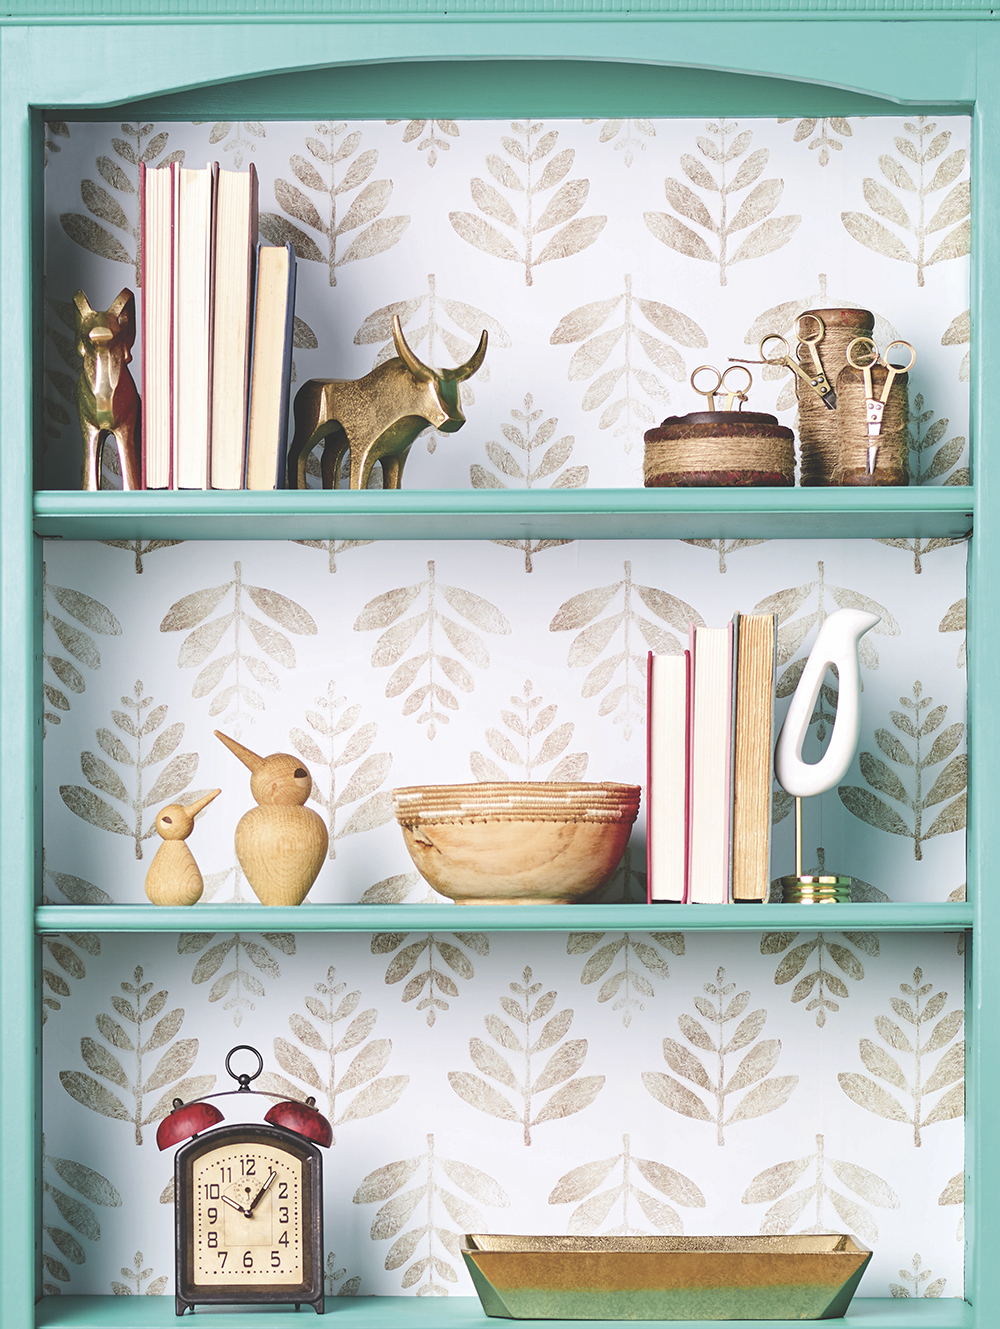 From Drab to Dreamy: A Bookcase Renovation with Wallpaper